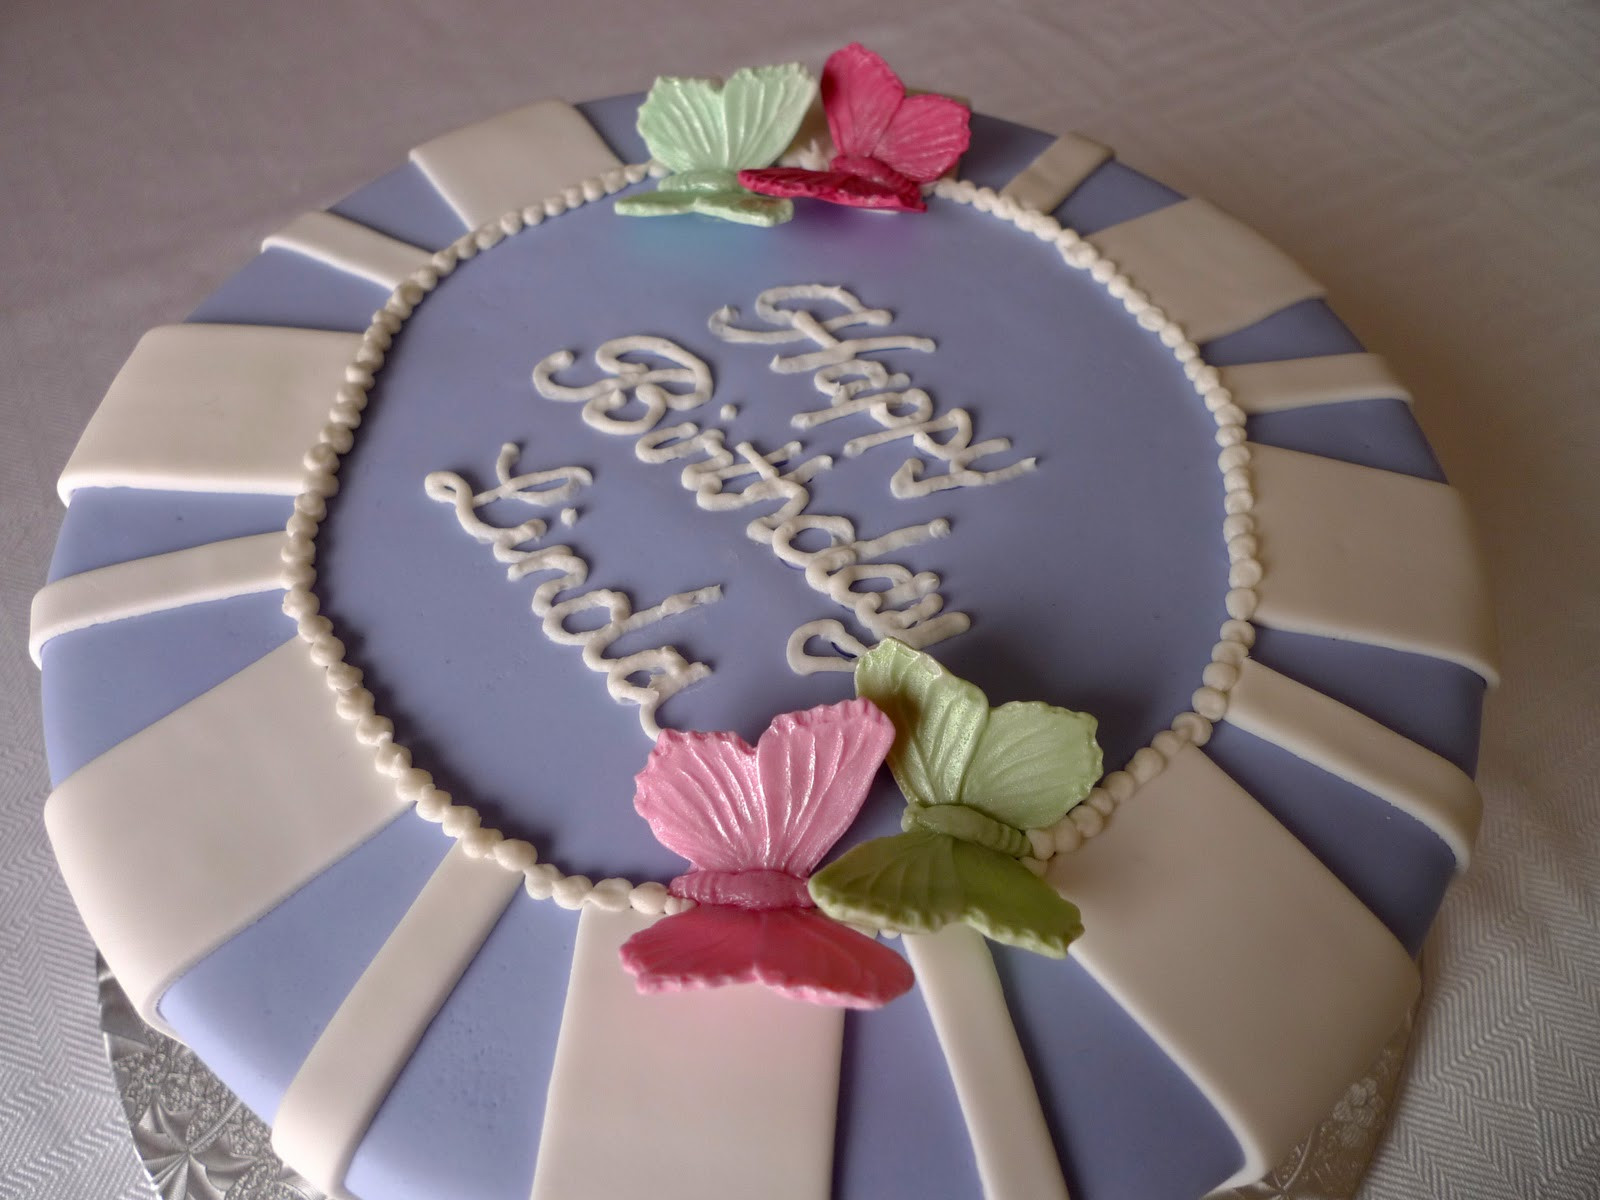 Best ideas about Happy Birthday Linda Cake . Save or Pin Cakebee Signature Stripe Birthday cakes Now.